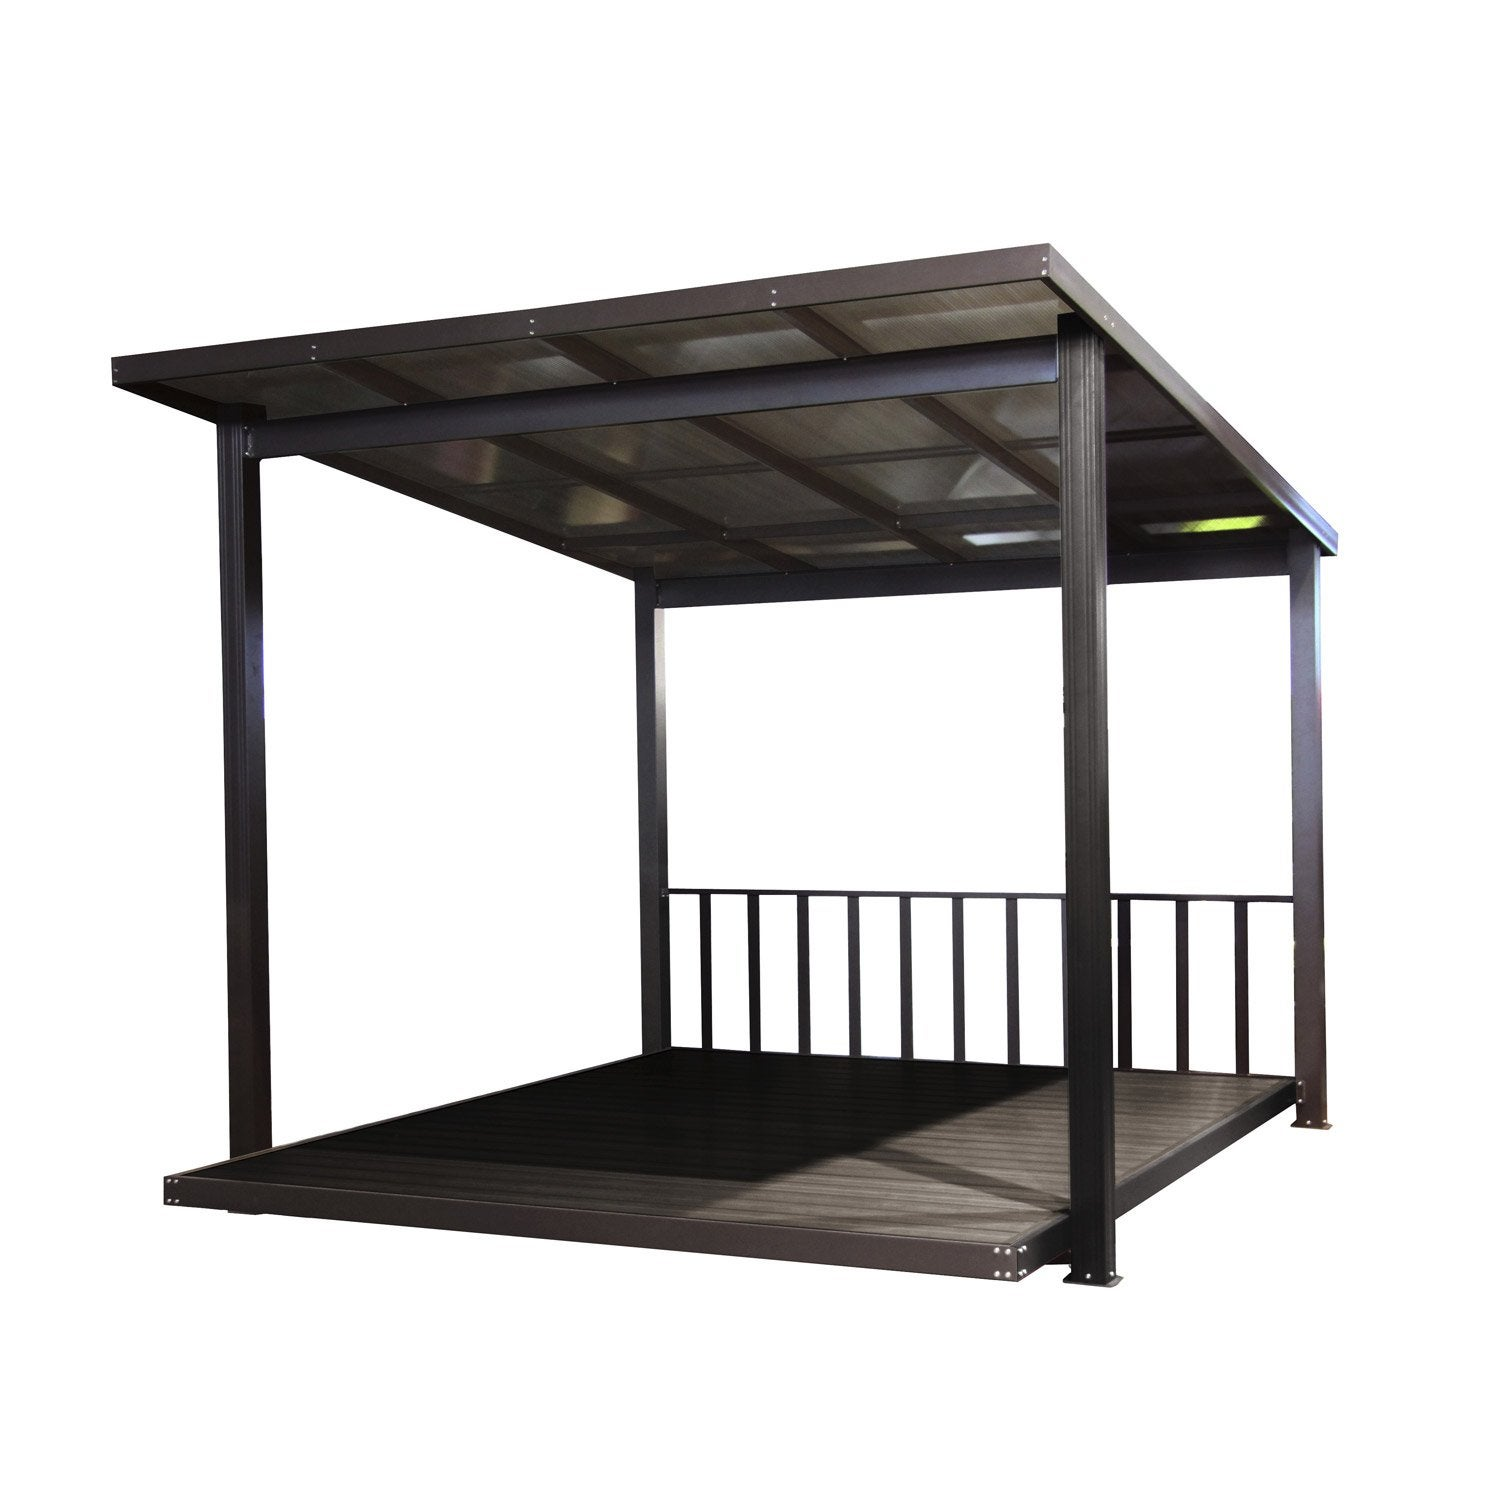 pergola autoportante aluminium marron fonc m leroy merlin. Black Bedroom Furniture Sets. Home Design Ideas